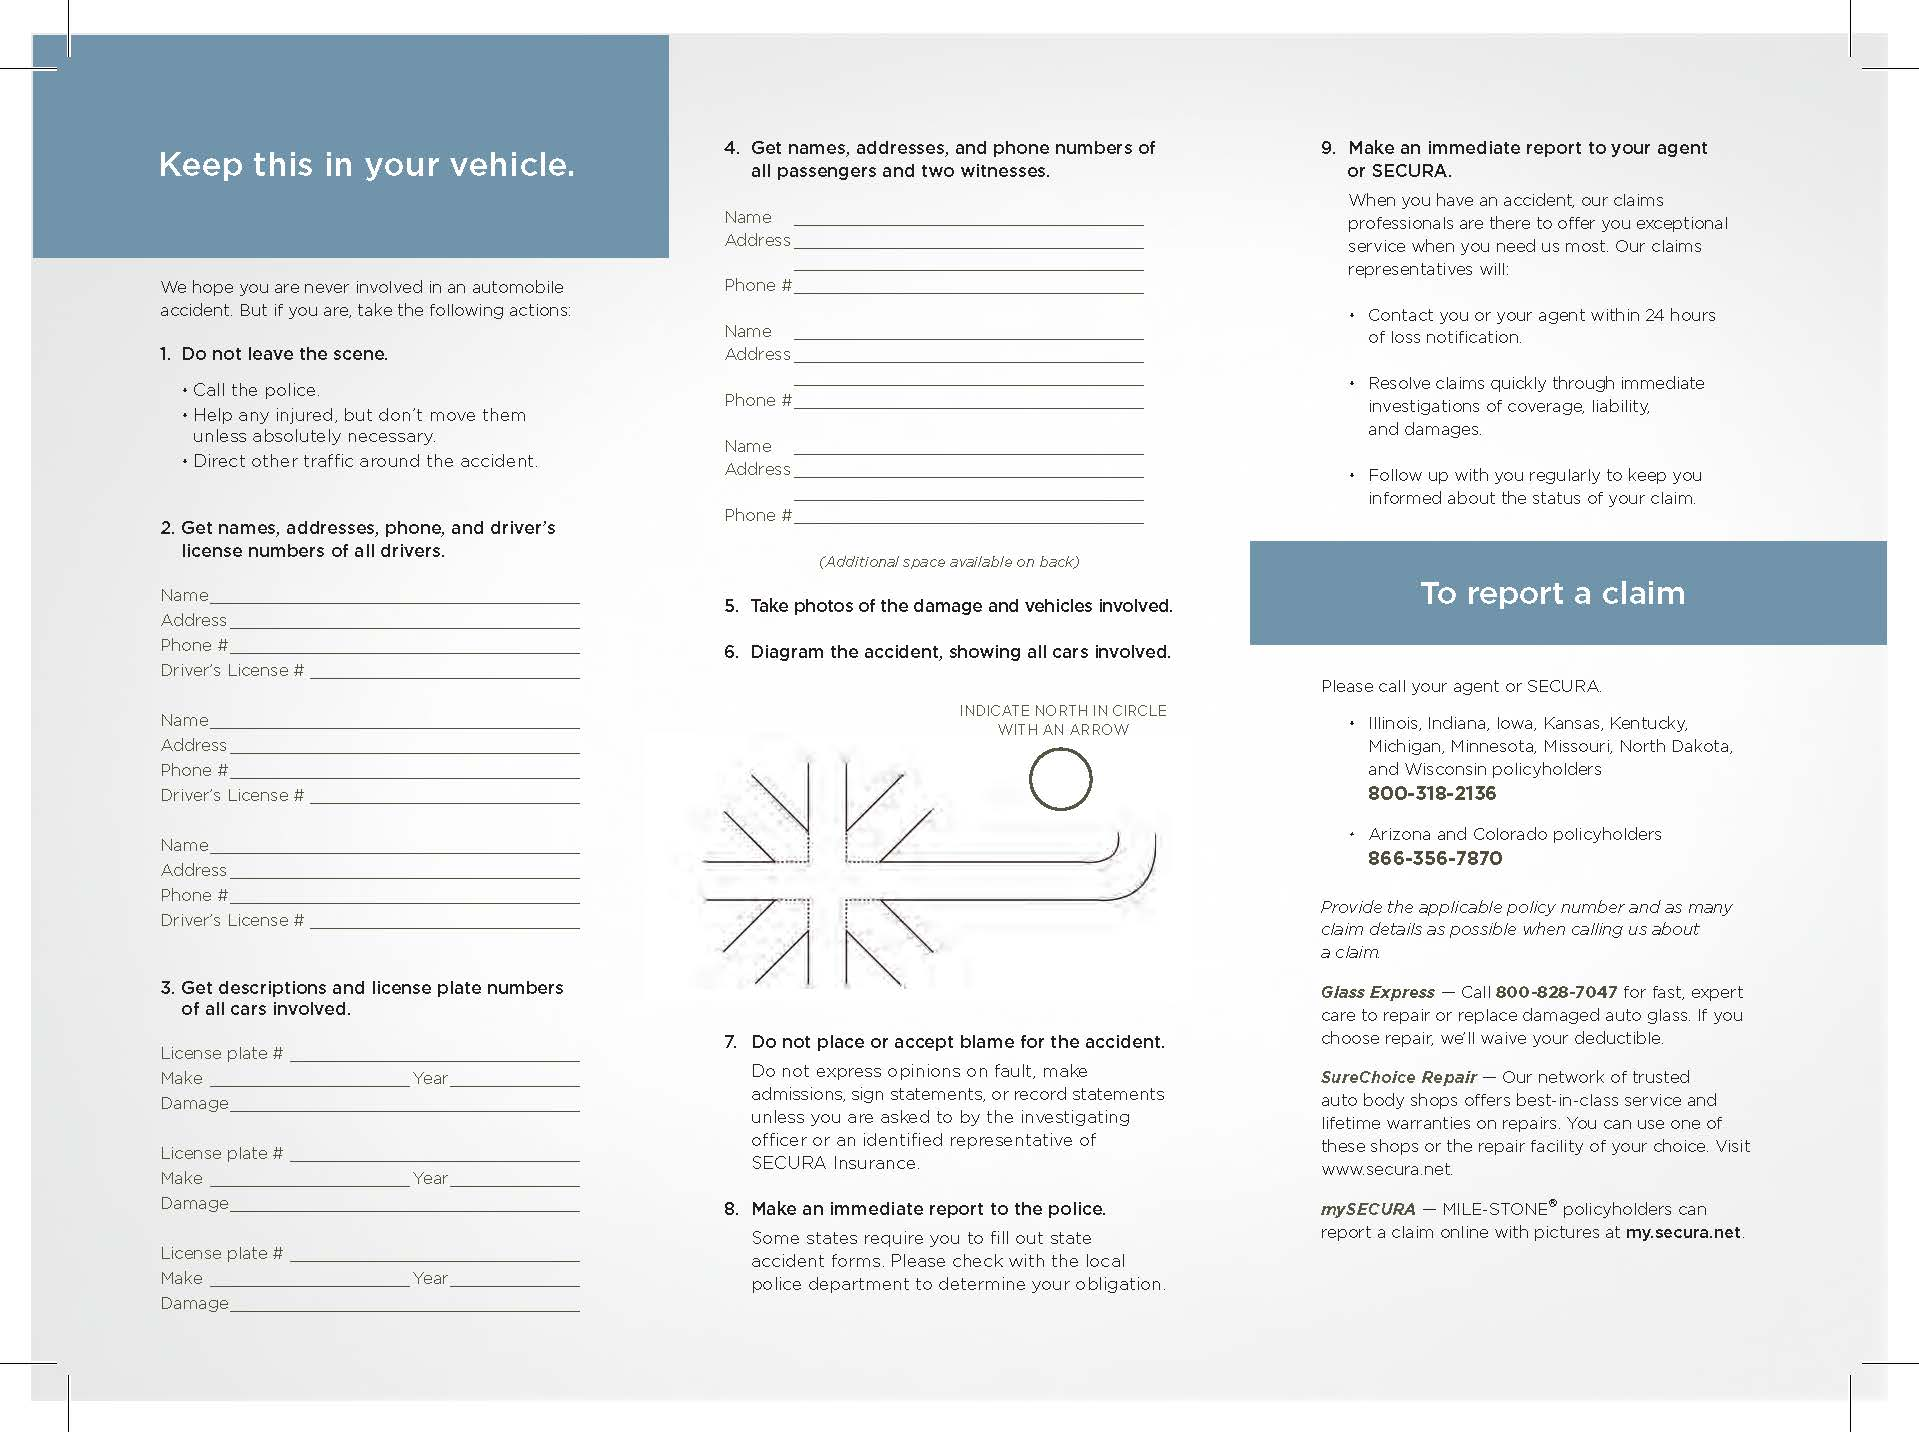 hight resolution of download and print this resource to help you through the important first steps after an accident